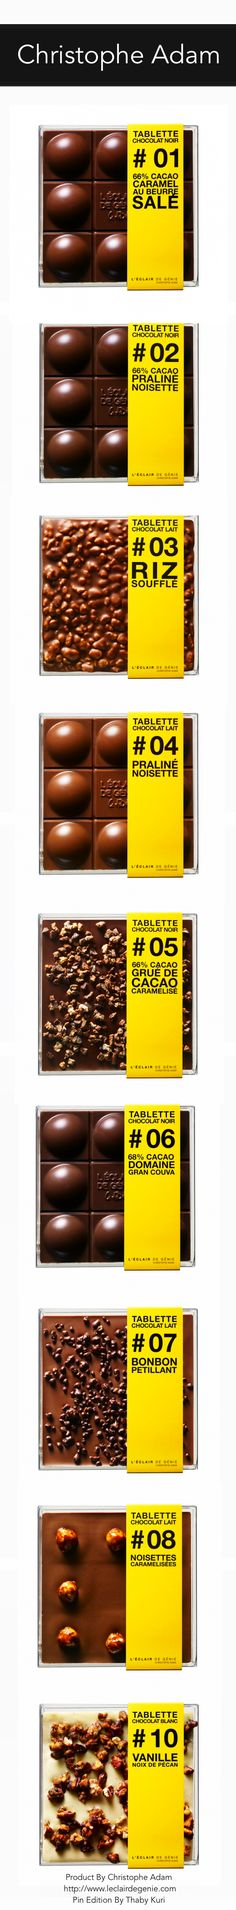 AMAZING CHOCOLATE TABLETTE  By Christophe Adam. #numbers #chocolate #packaging #beautifulfod #bar #tablet